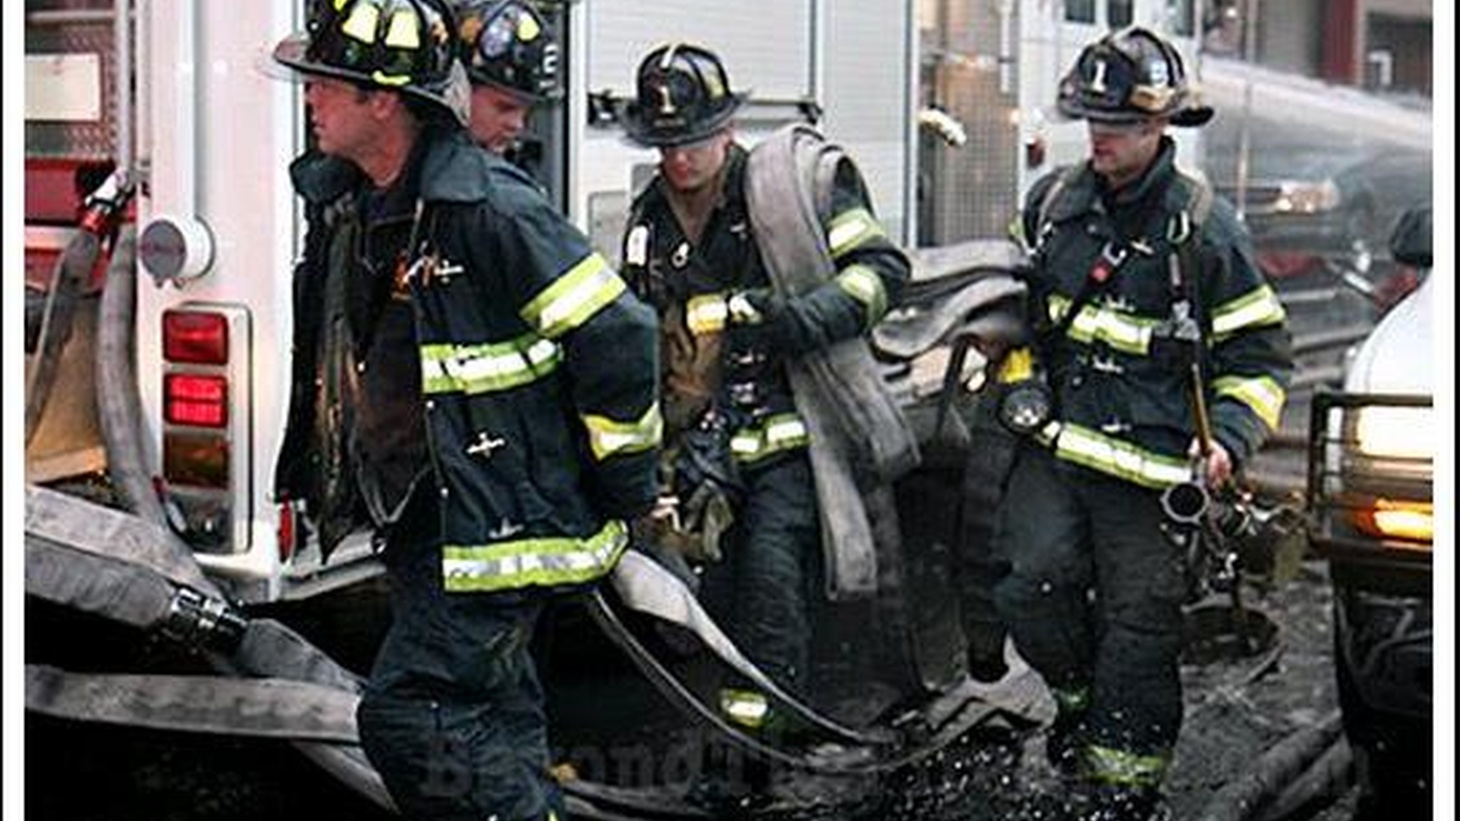 By a one-vote majority, the US Supreme Court has ruled in favor of white firefighters who claimed they were victims of reverse discrimination. Will the decision clarify the rules on race and employment or lead to future confusion? What will it mean for the nomination of Judge Sonia Sotomayor? Also, Bernard Madoff is sentenced to 150 years in federal prison, and Latin America's first military coup in 16 years.